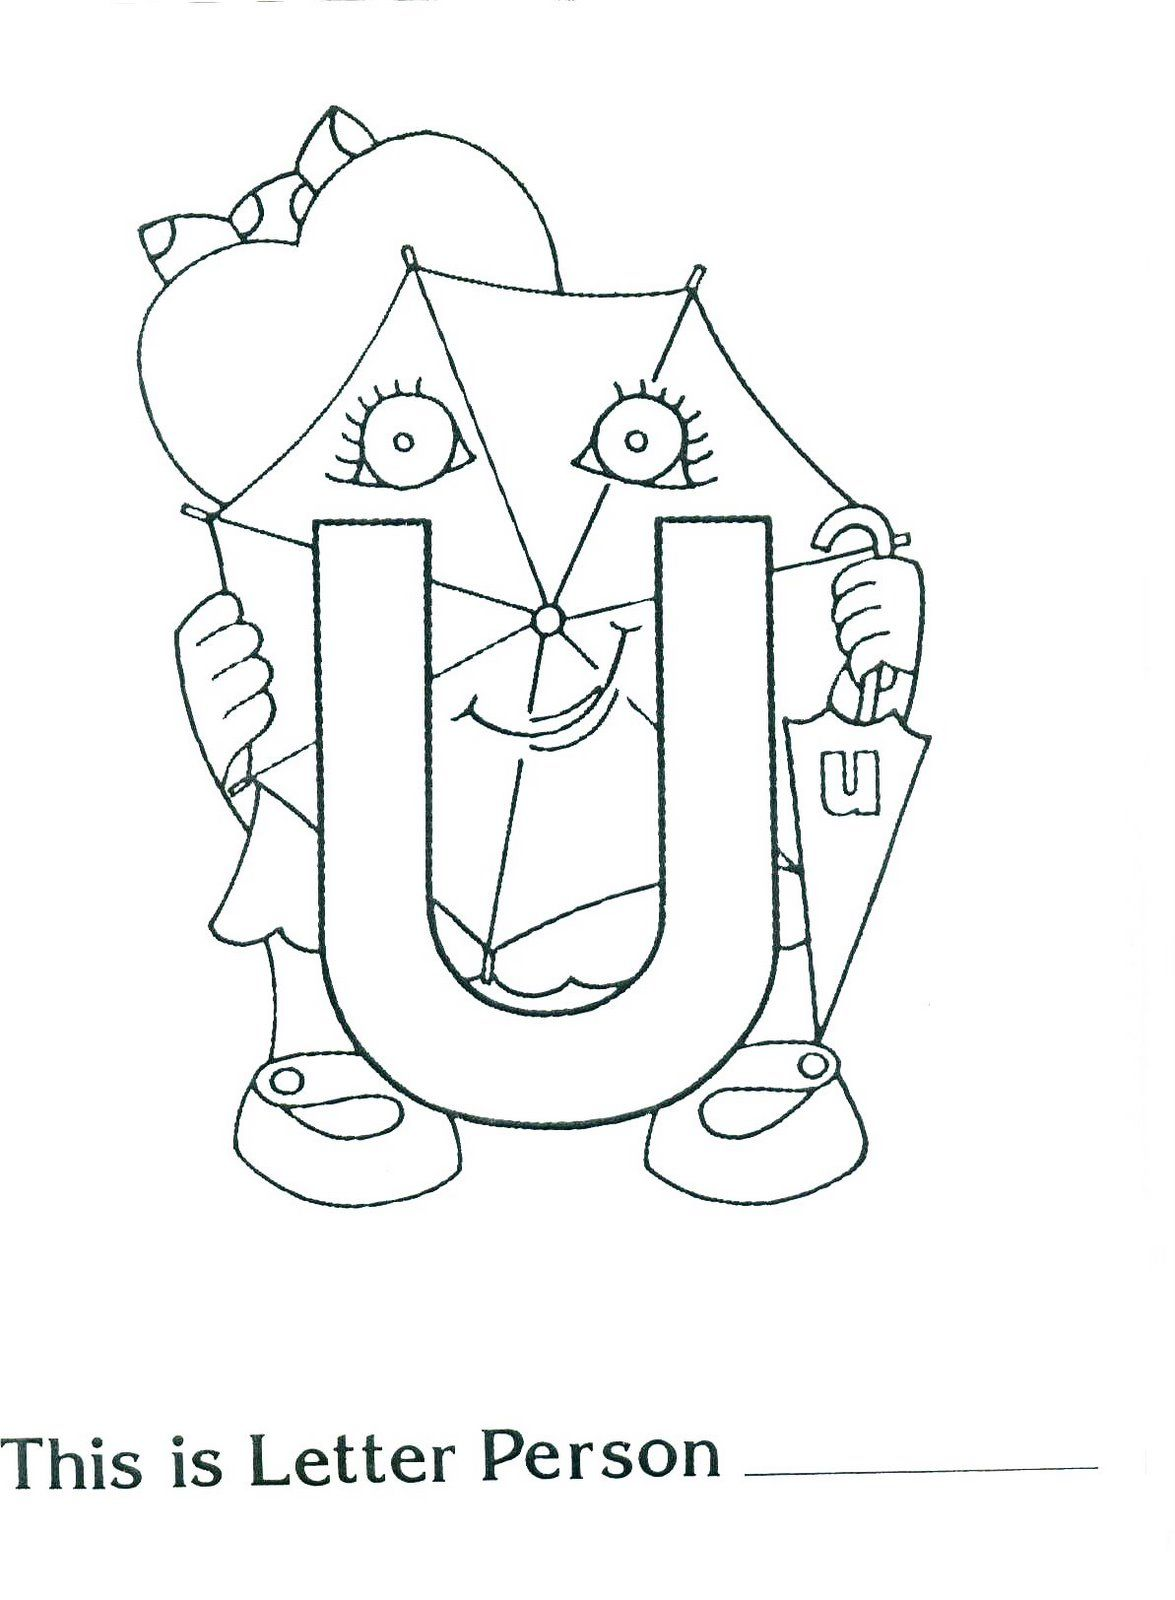 Letter People Coloring Pages Letter People People Coloring Pages Personalized Letters [ 1600 x 1175 Pixel ]